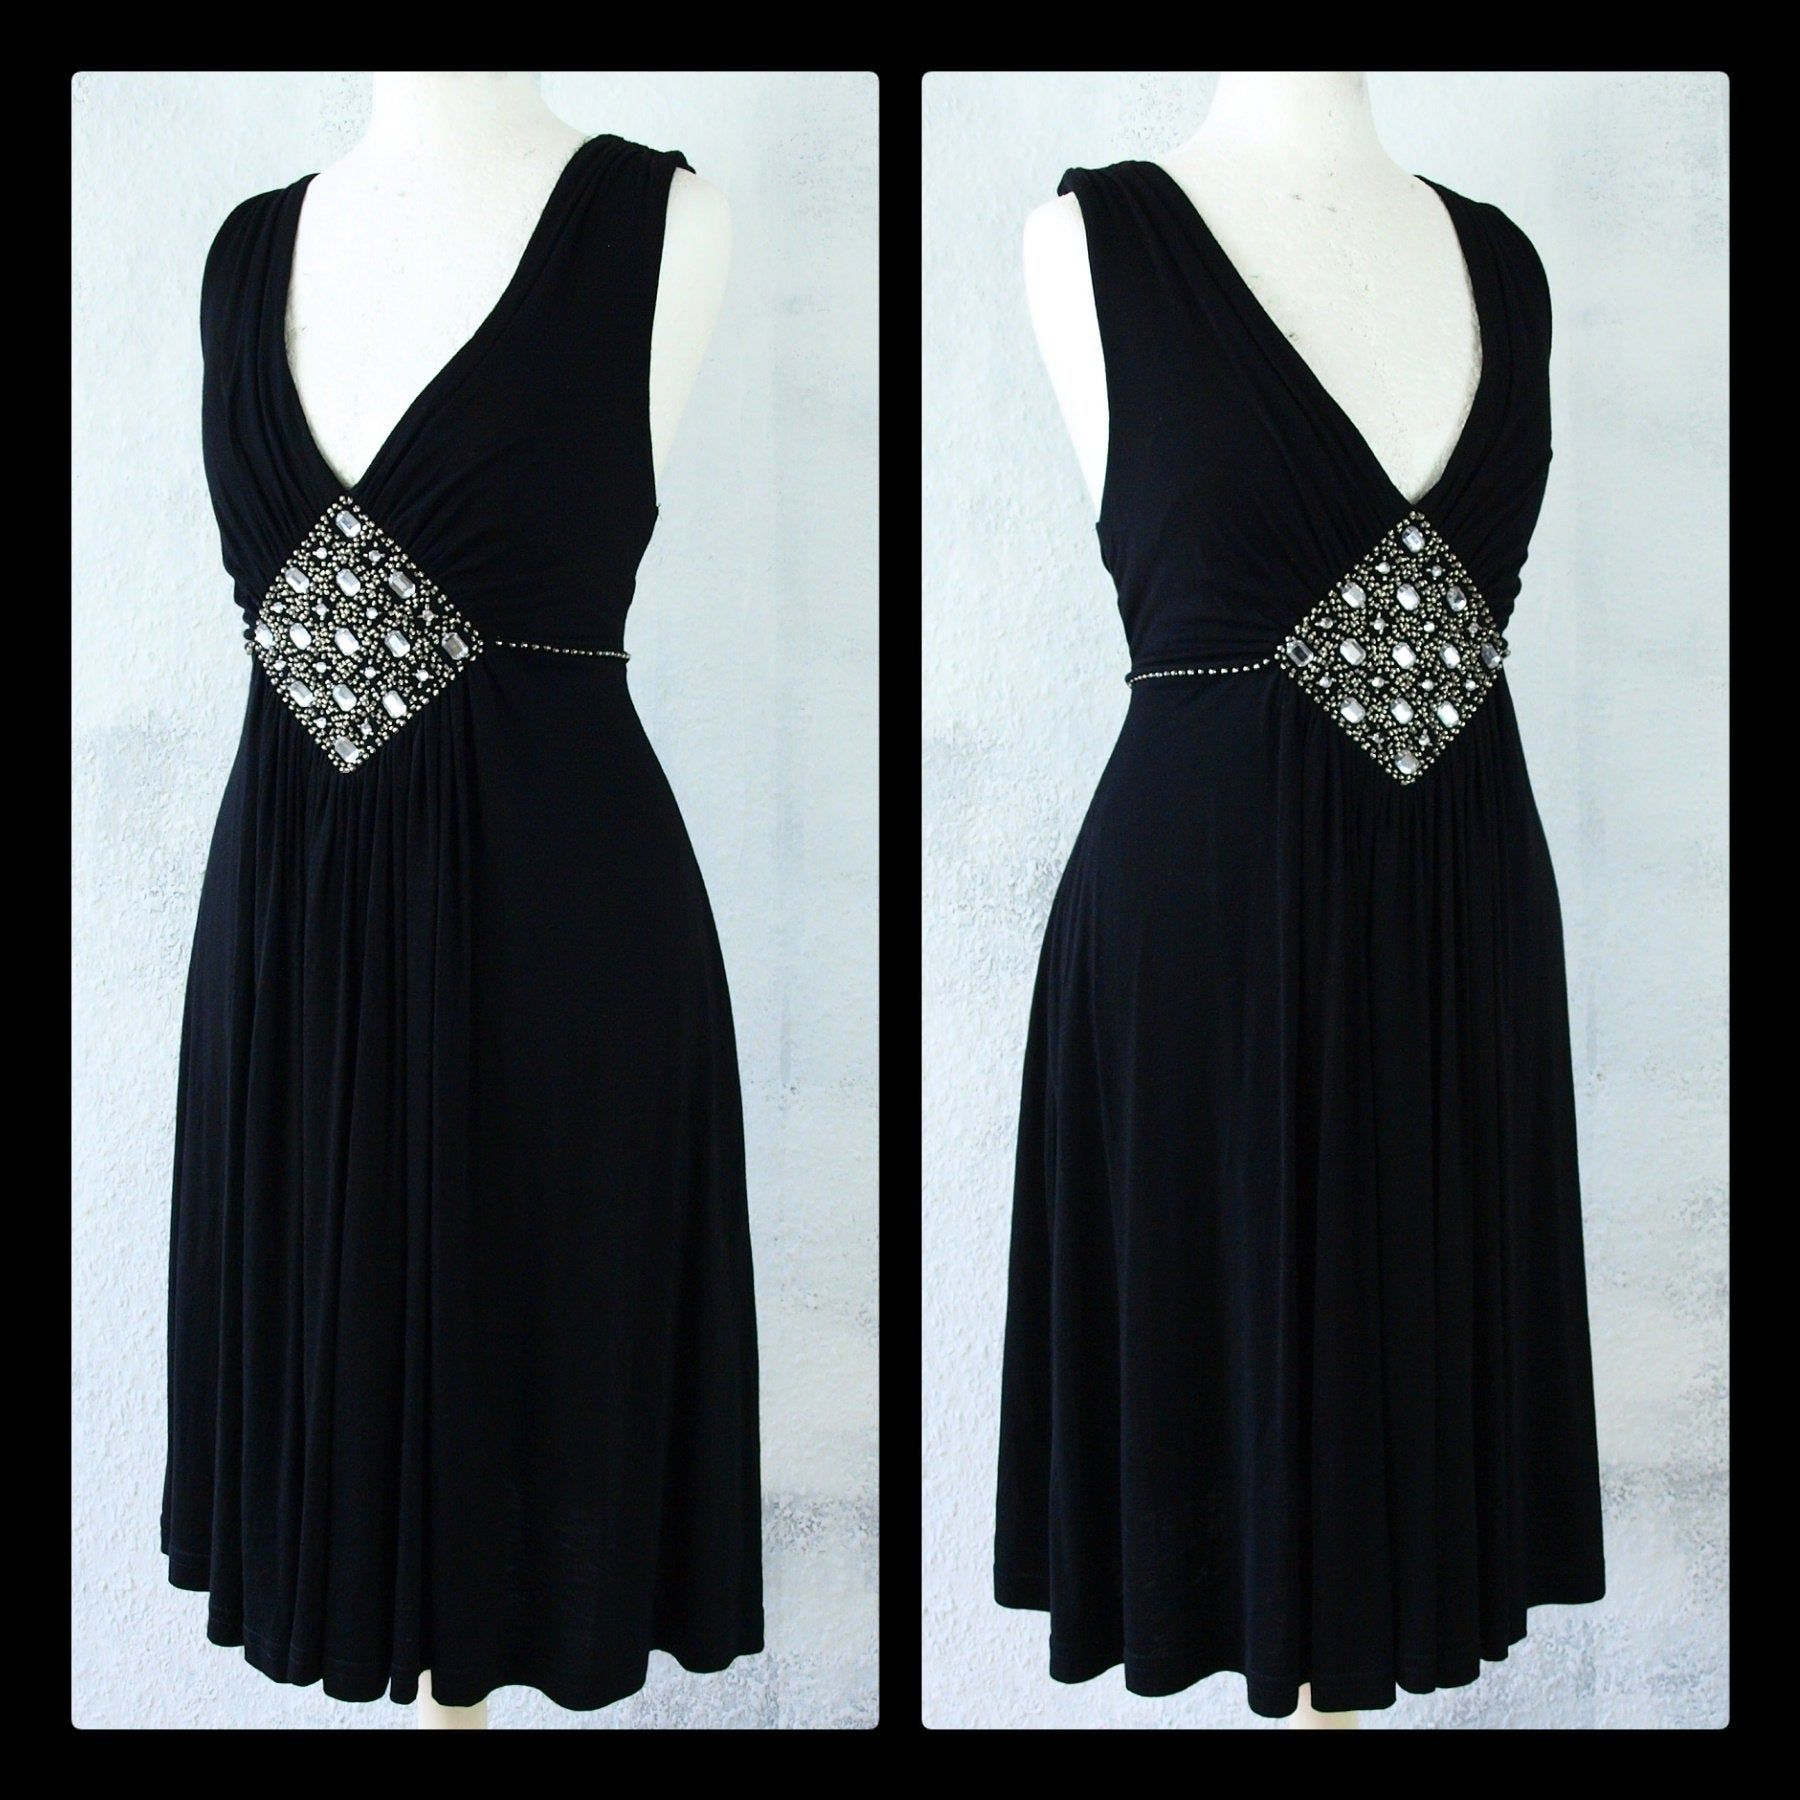 S M Dress Rhinestone Gatsby Empire Vintage Upcycling Second Hand